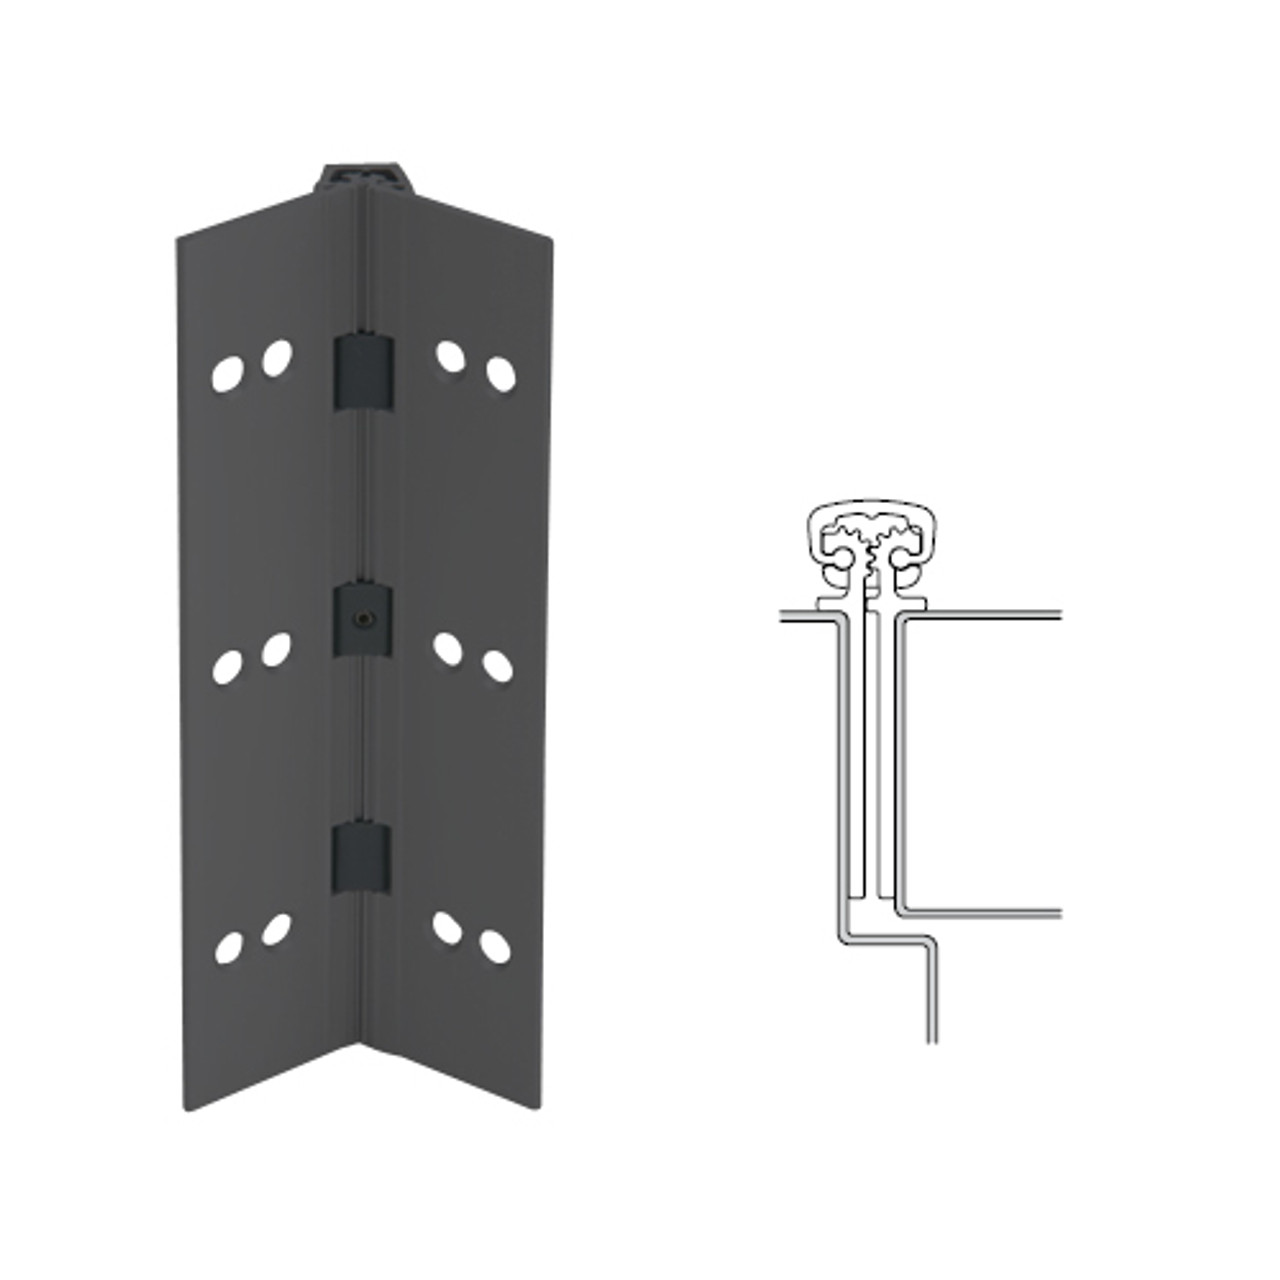 027XY-315AN-85-SECWDWD IVES Full Mortise Continuous Geared Hinges with Security Screws - Hex Pin Drive in Anodized Black